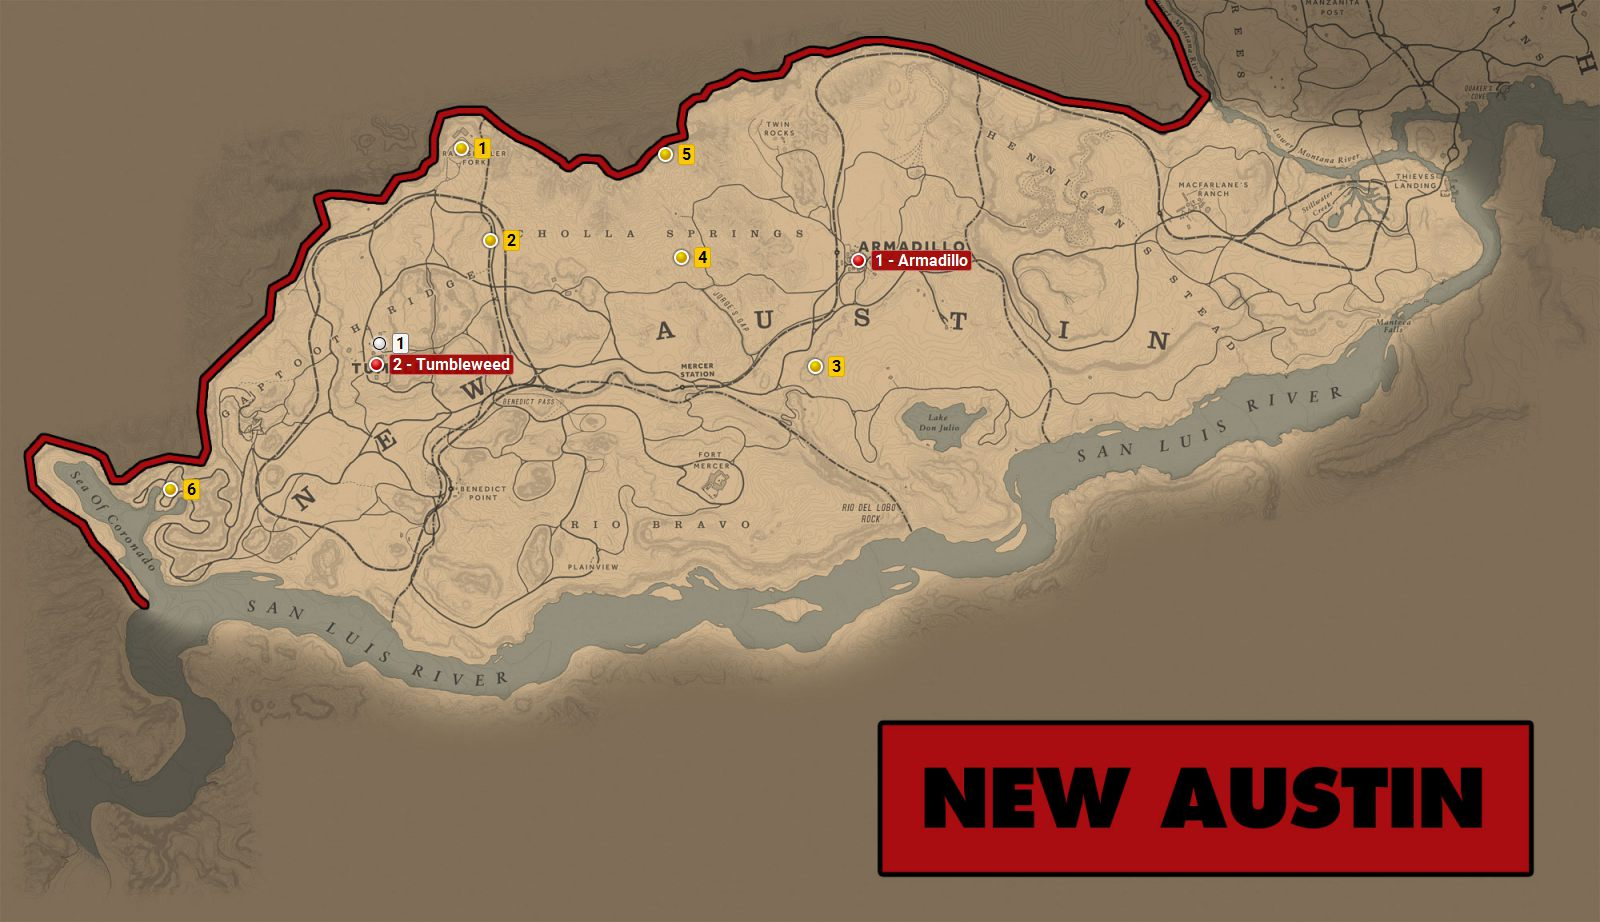 Rdr2 Karte Pdf.New Austin Red Dead Redemption 2 World Atlas Map Red